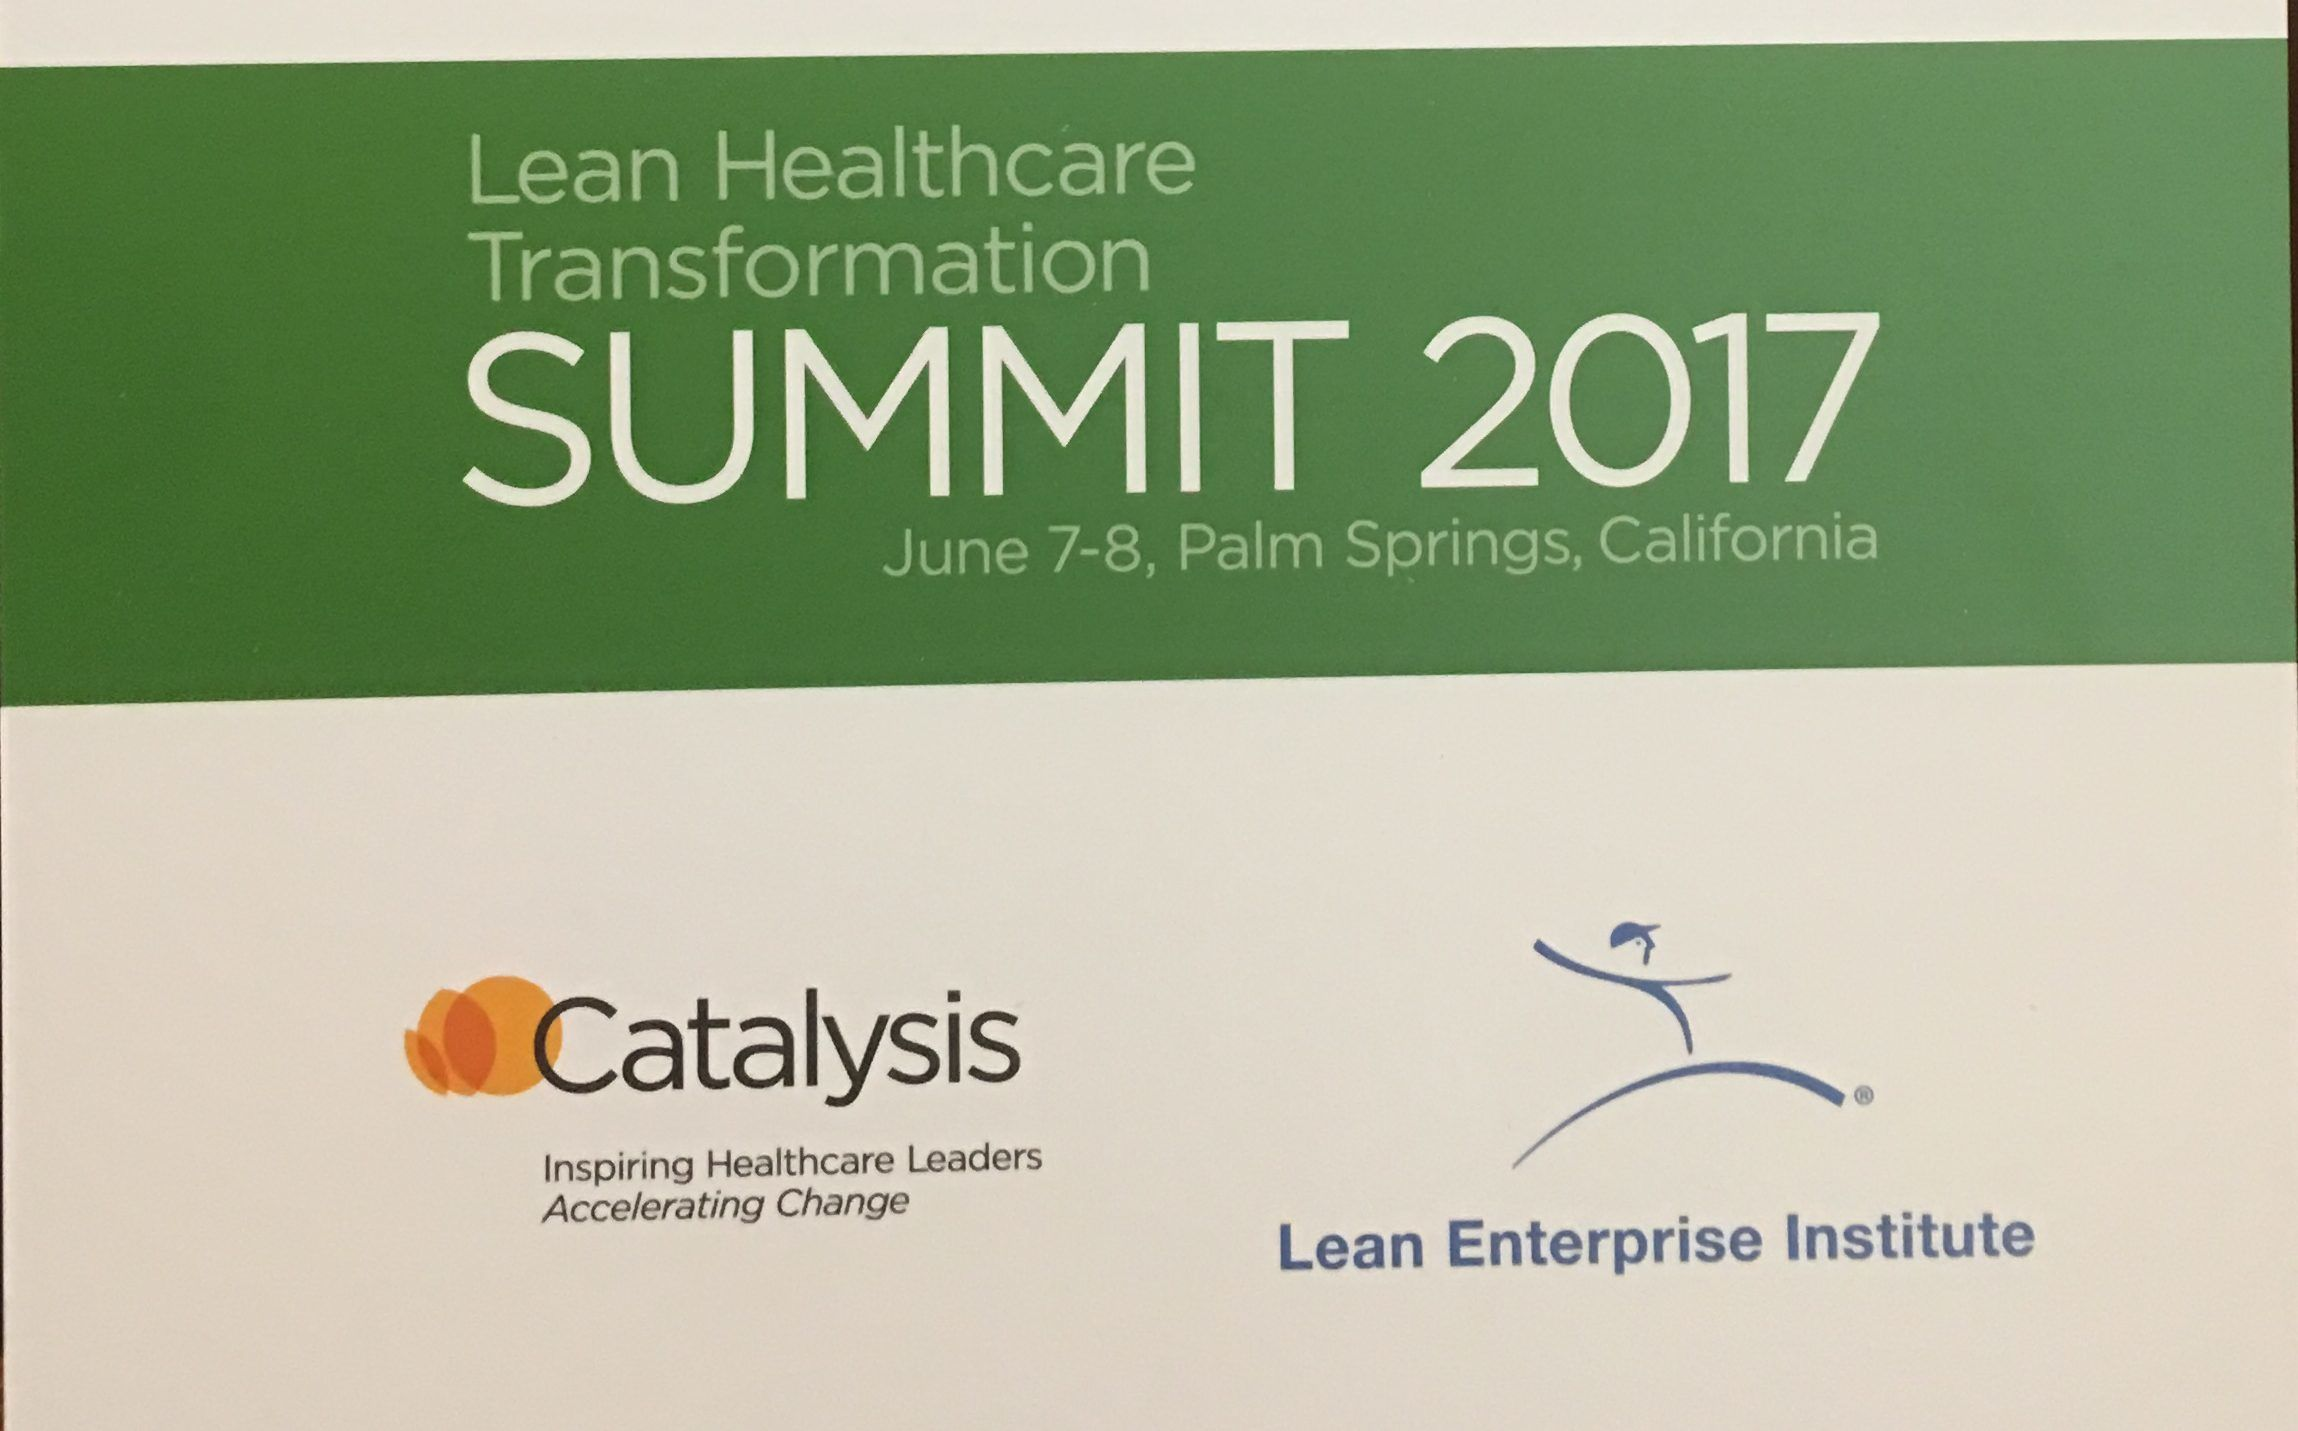 Lean Healthcare Transformation Summit 2017: Reflections and